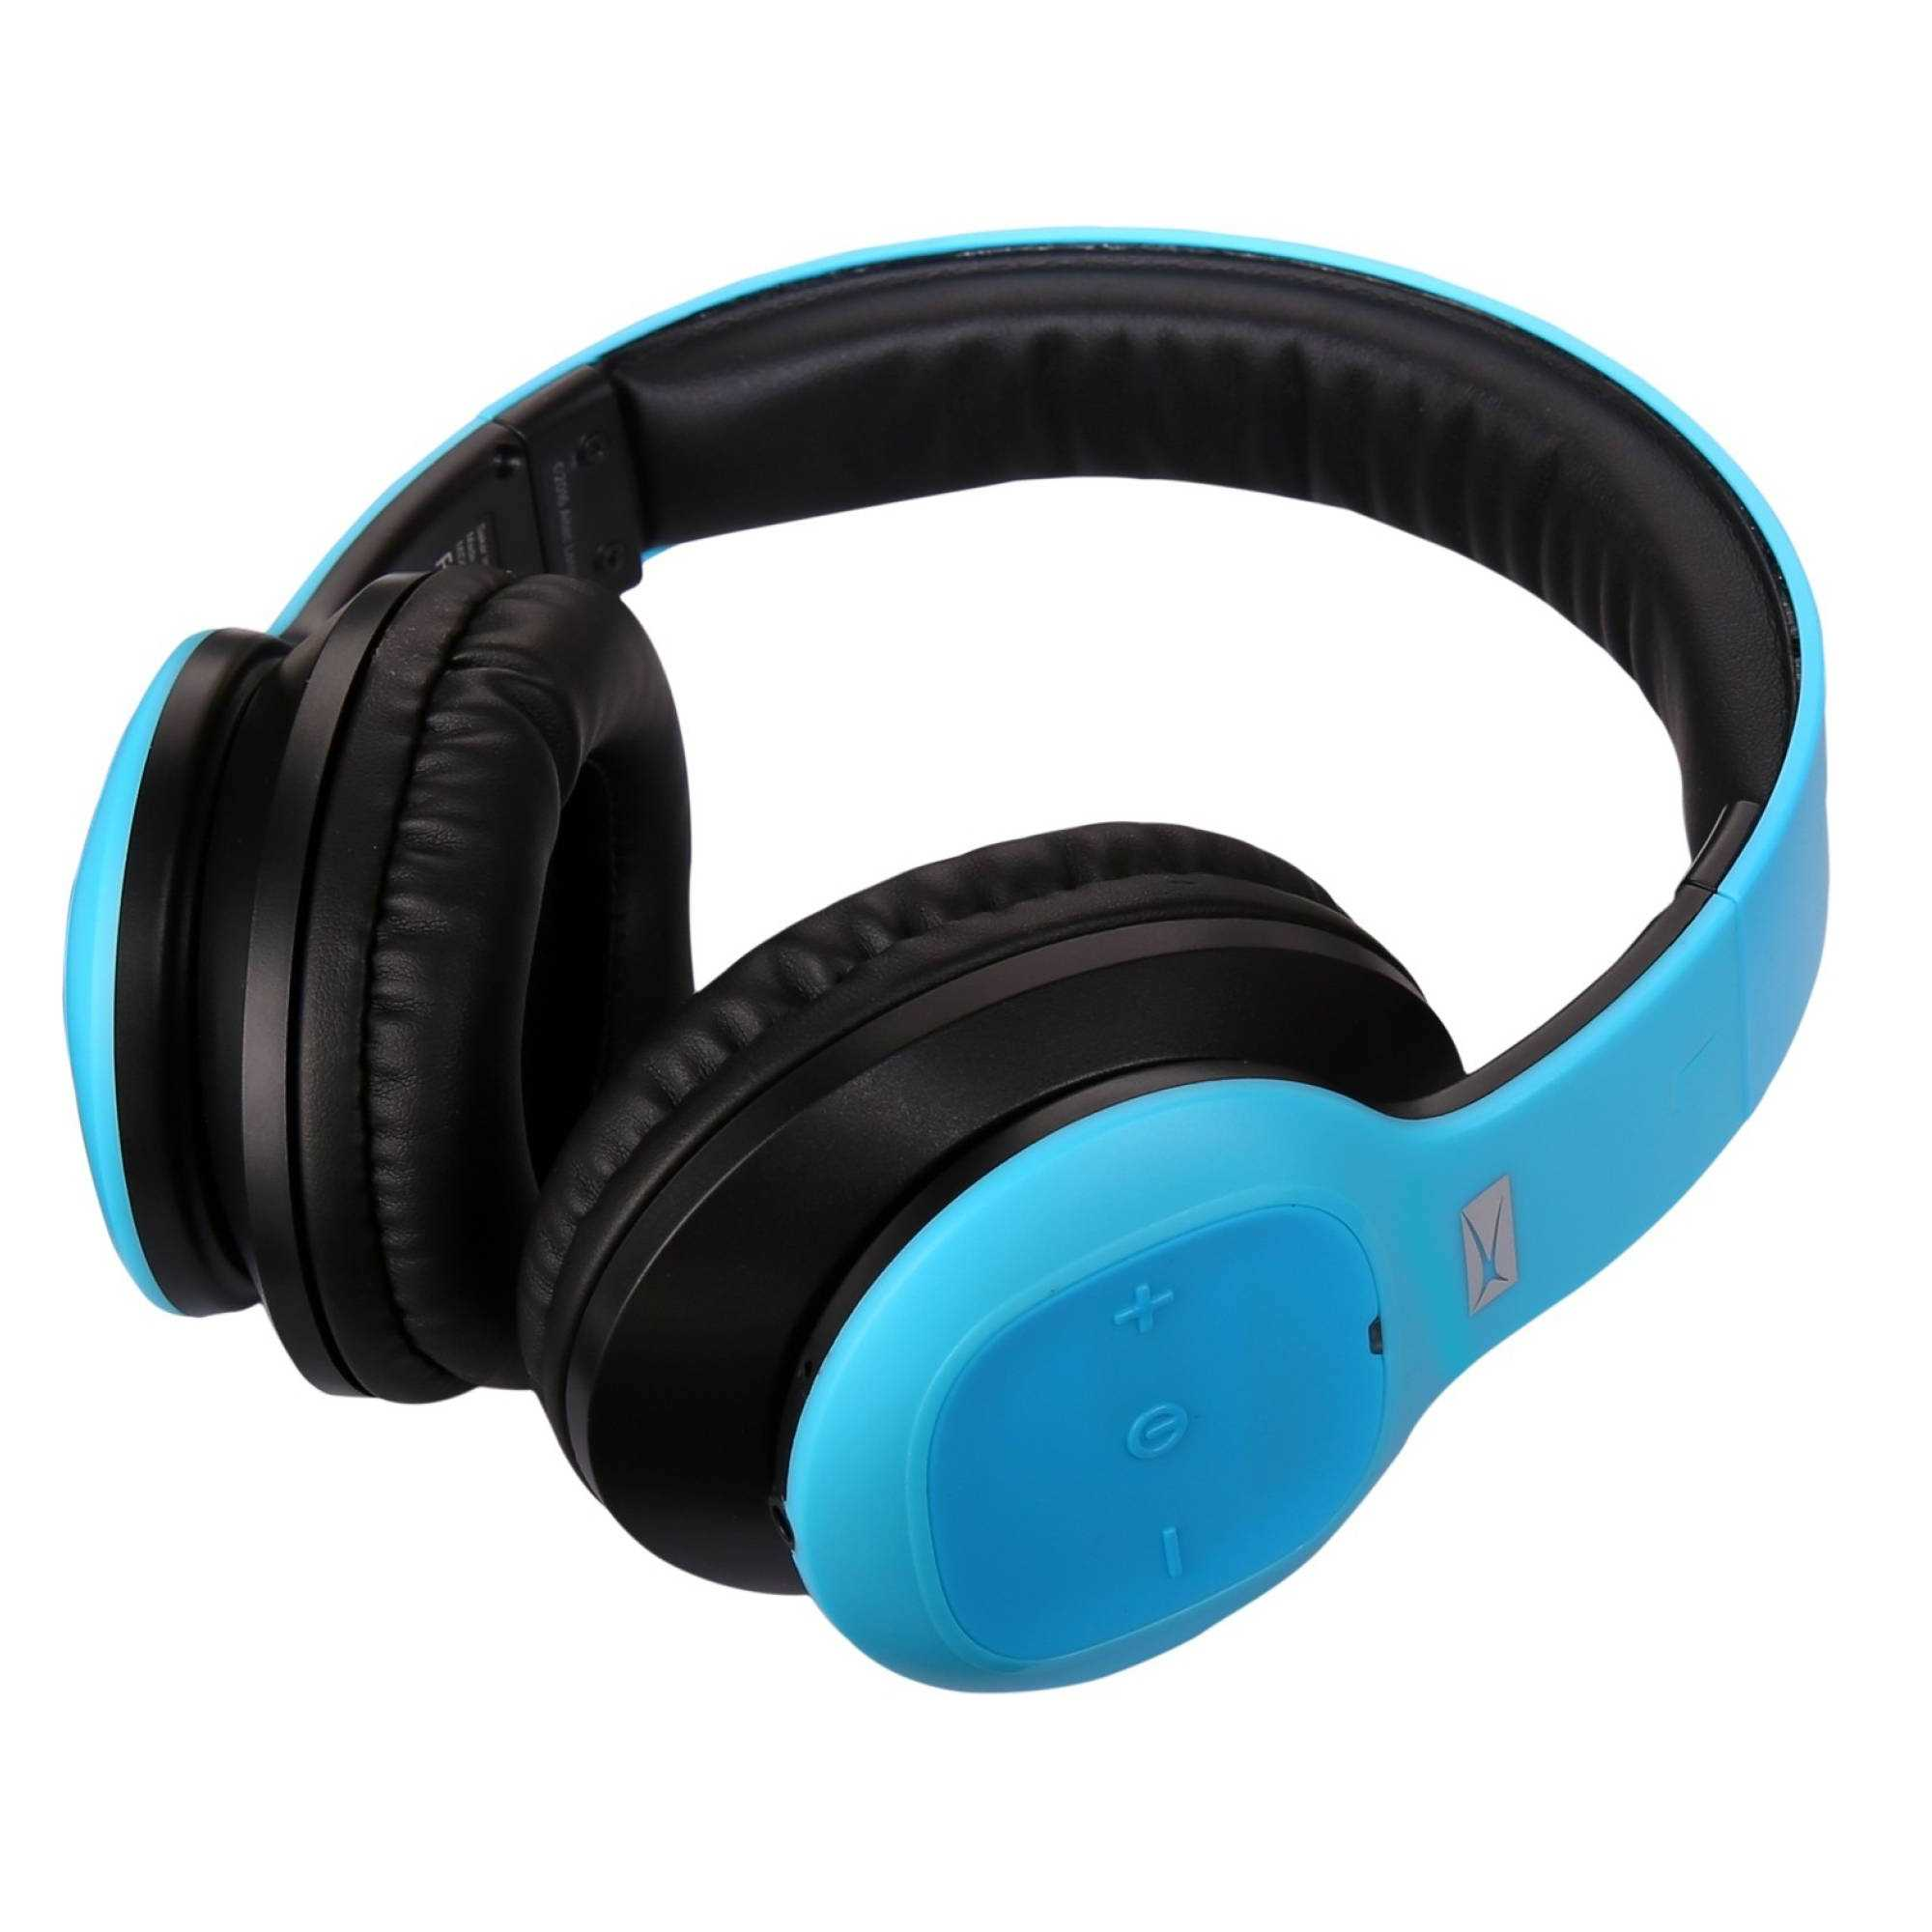 Altec Lansing MZW300 Wired and Wireless Headphone Price {11 Sep 2018 ...